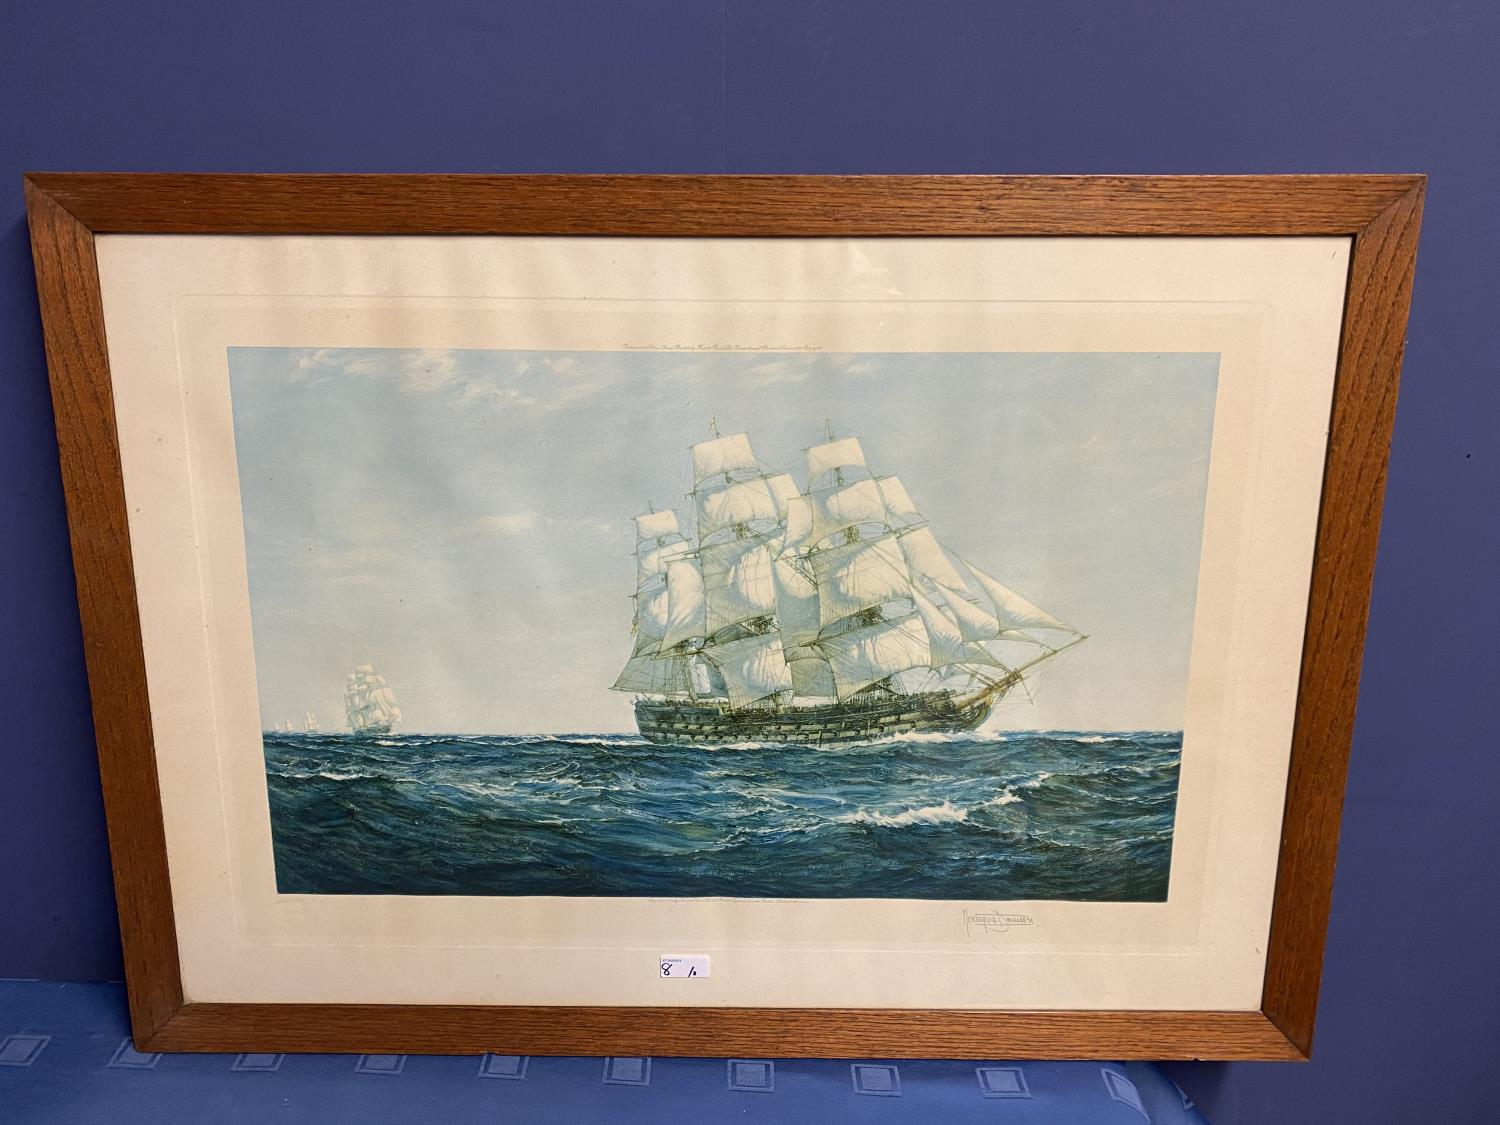 Black and White etching on Paper, Sailing ship fully rigged at sea, 17 x 30cm , signed and titled in - Image 3 of 15